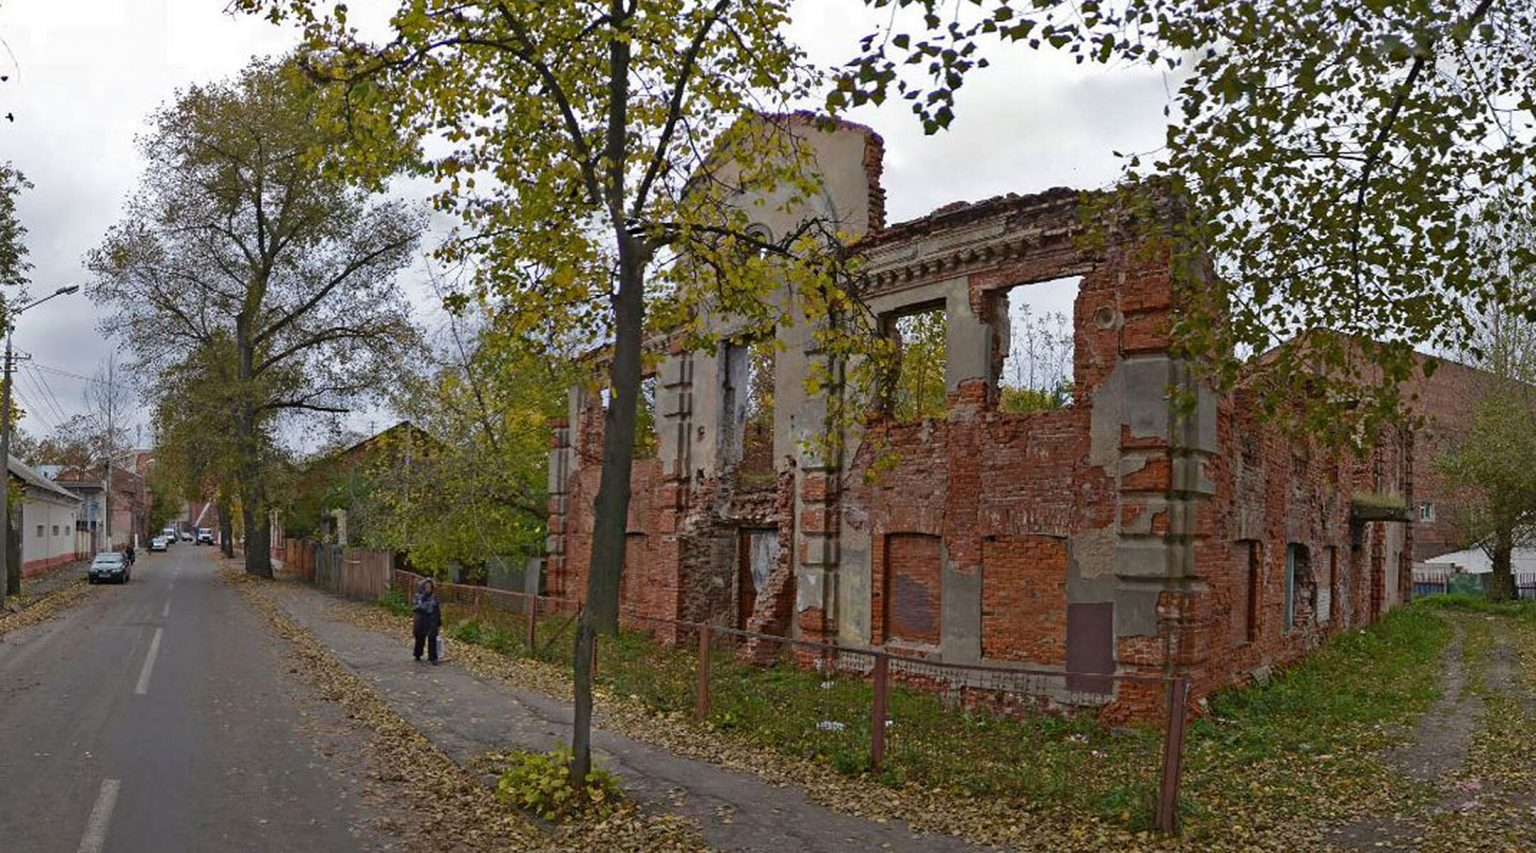 A woman walks past the ruins of the Great Lubavitch Synagogue in Vitebsk, Belarus. (Courtesy of the Municipality of Vitebsk)